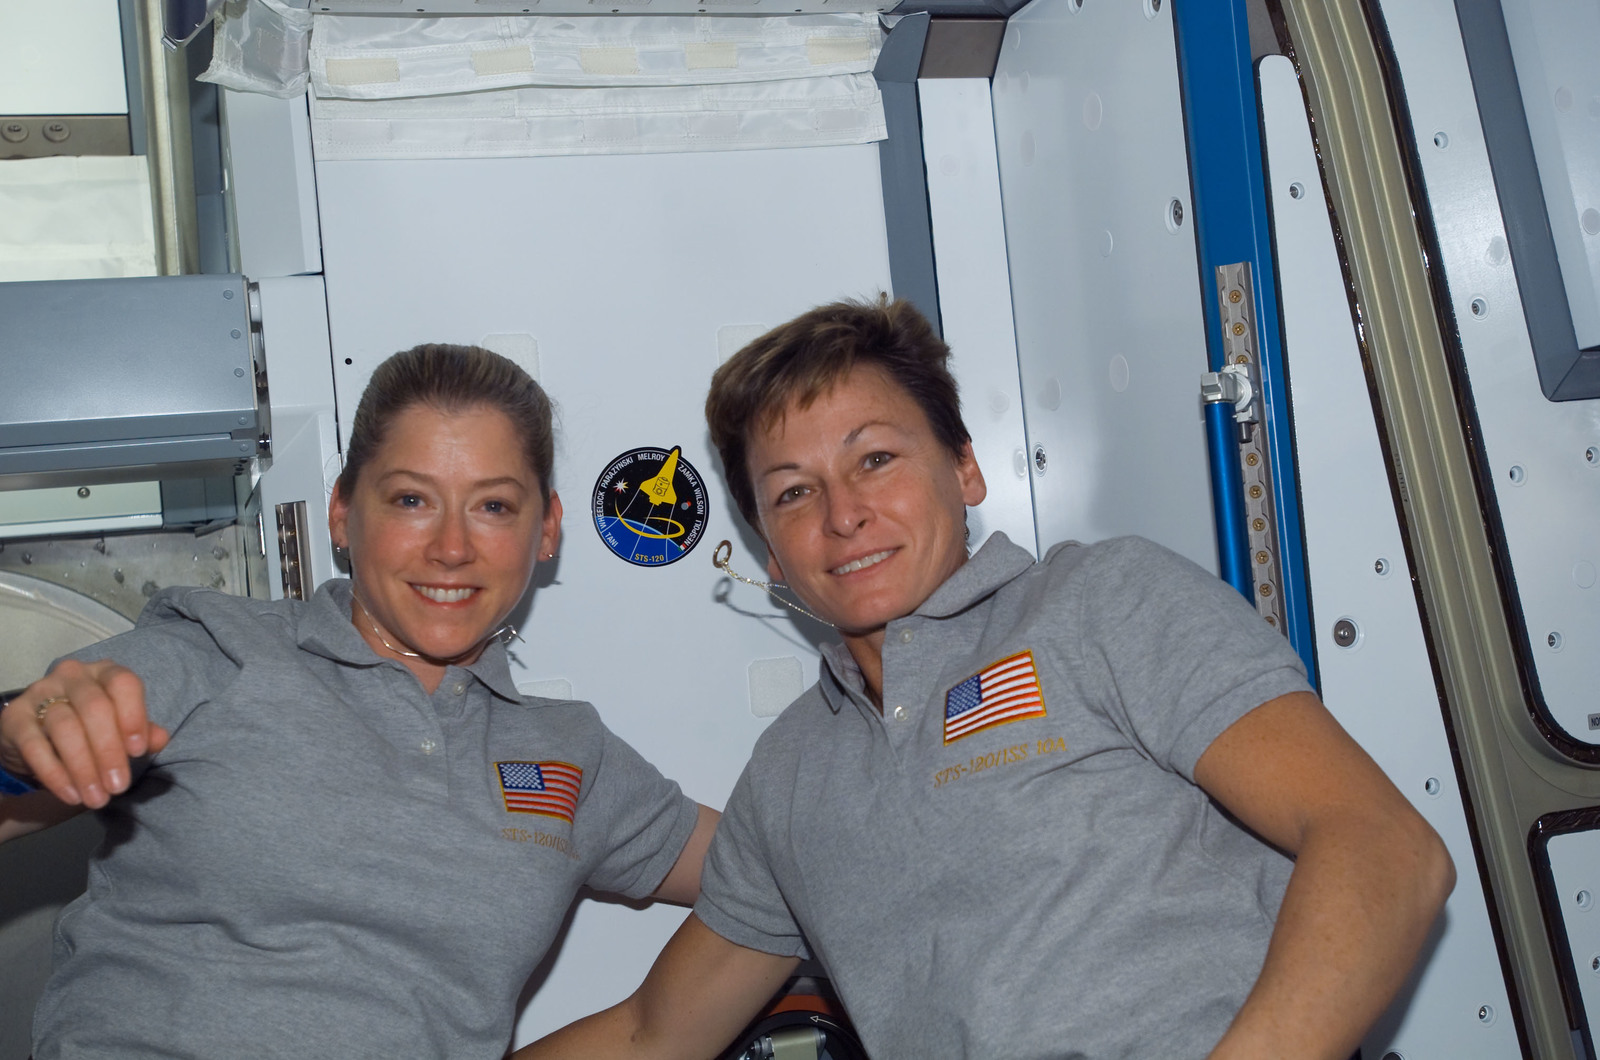 S120E008356 - STS-120 - STS-120 and Expedition 16 Commanders in Node 2/Harmony module